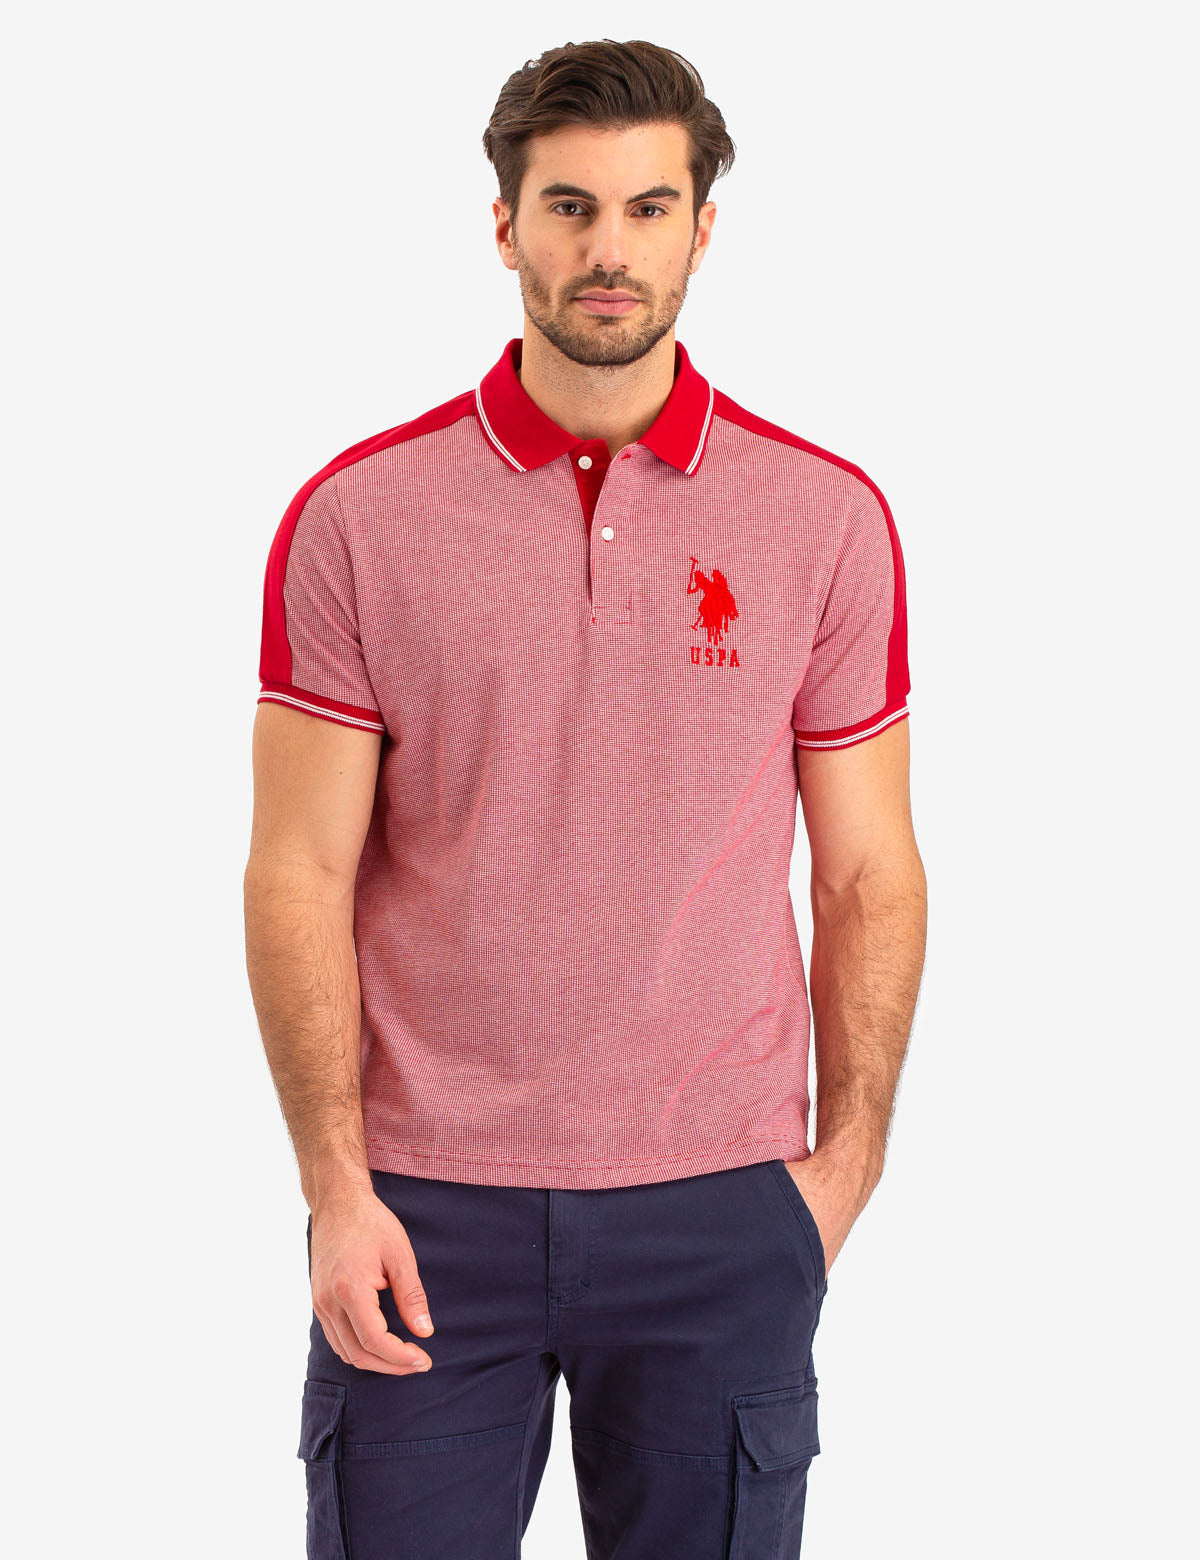 JACQUARD SHOULDER STRIPE POLO SHIRT